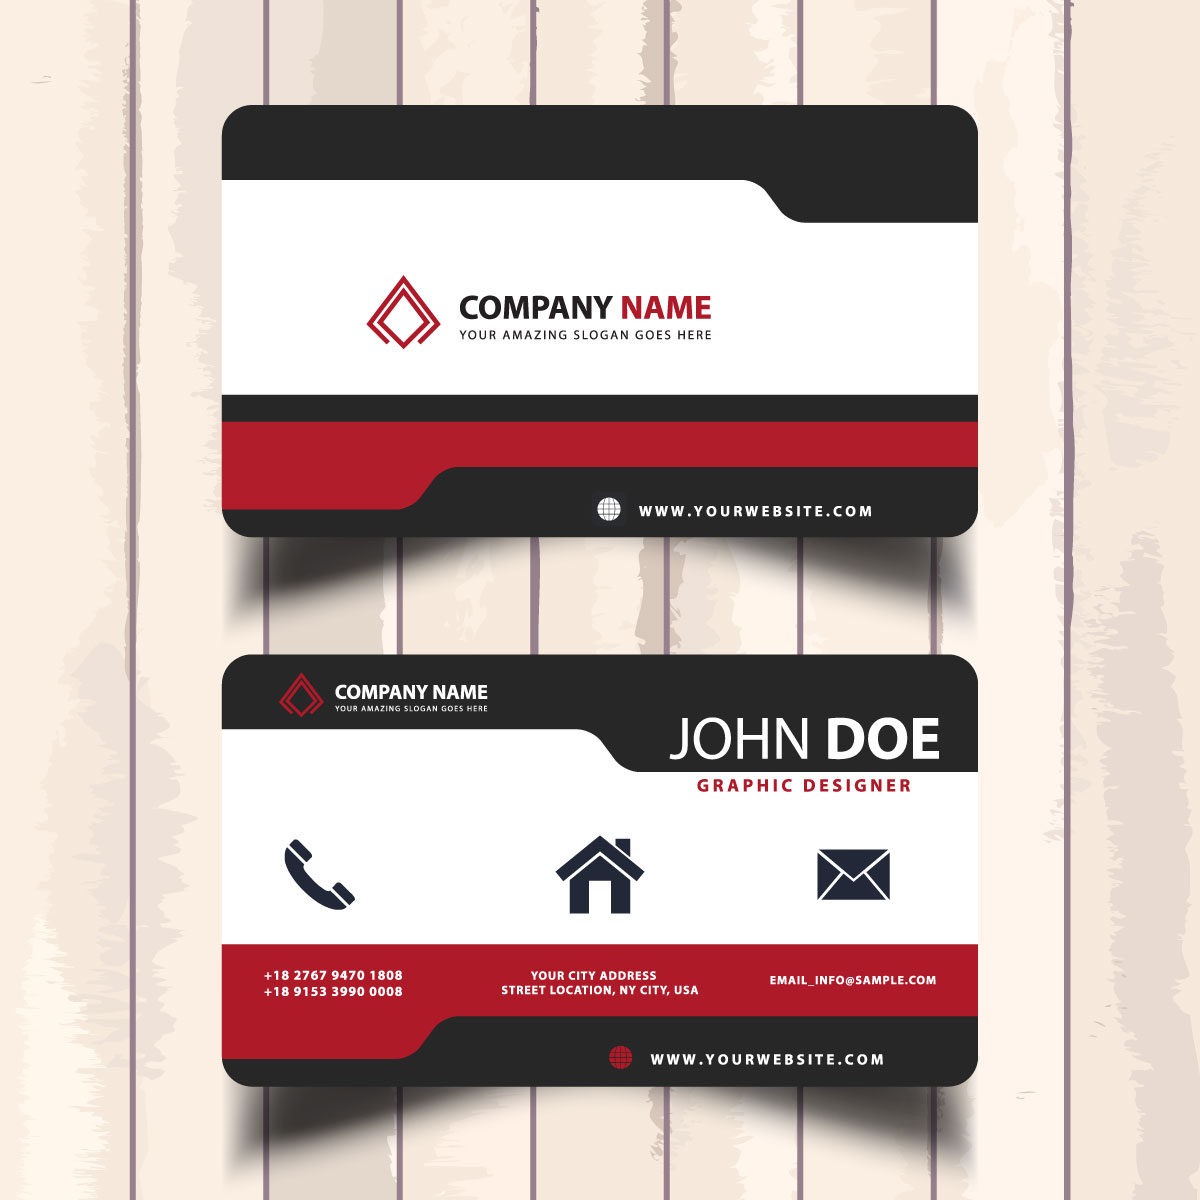 Design eye catching 2 sided business cards with one free design